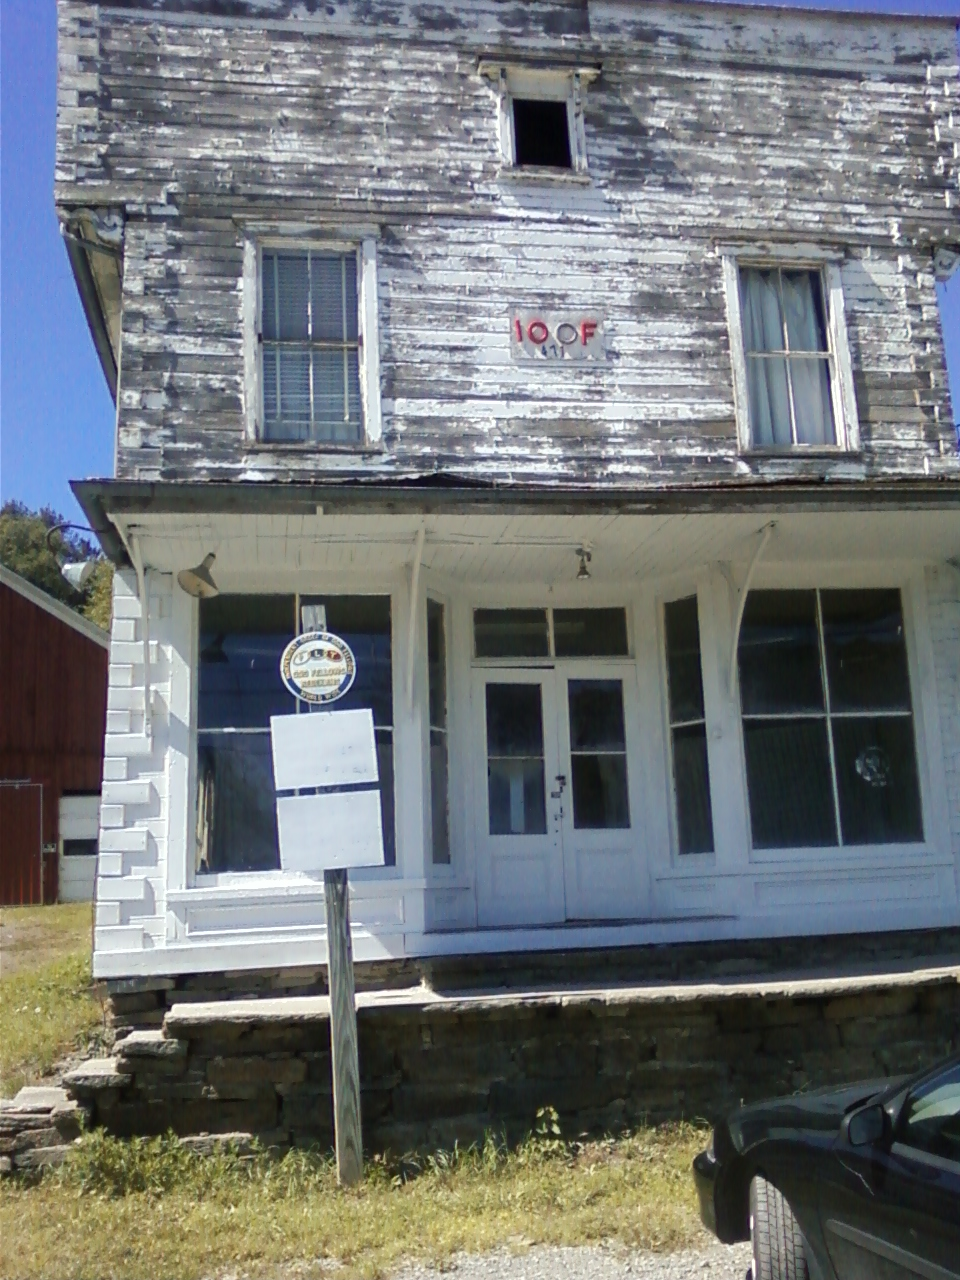 Rush Lodge